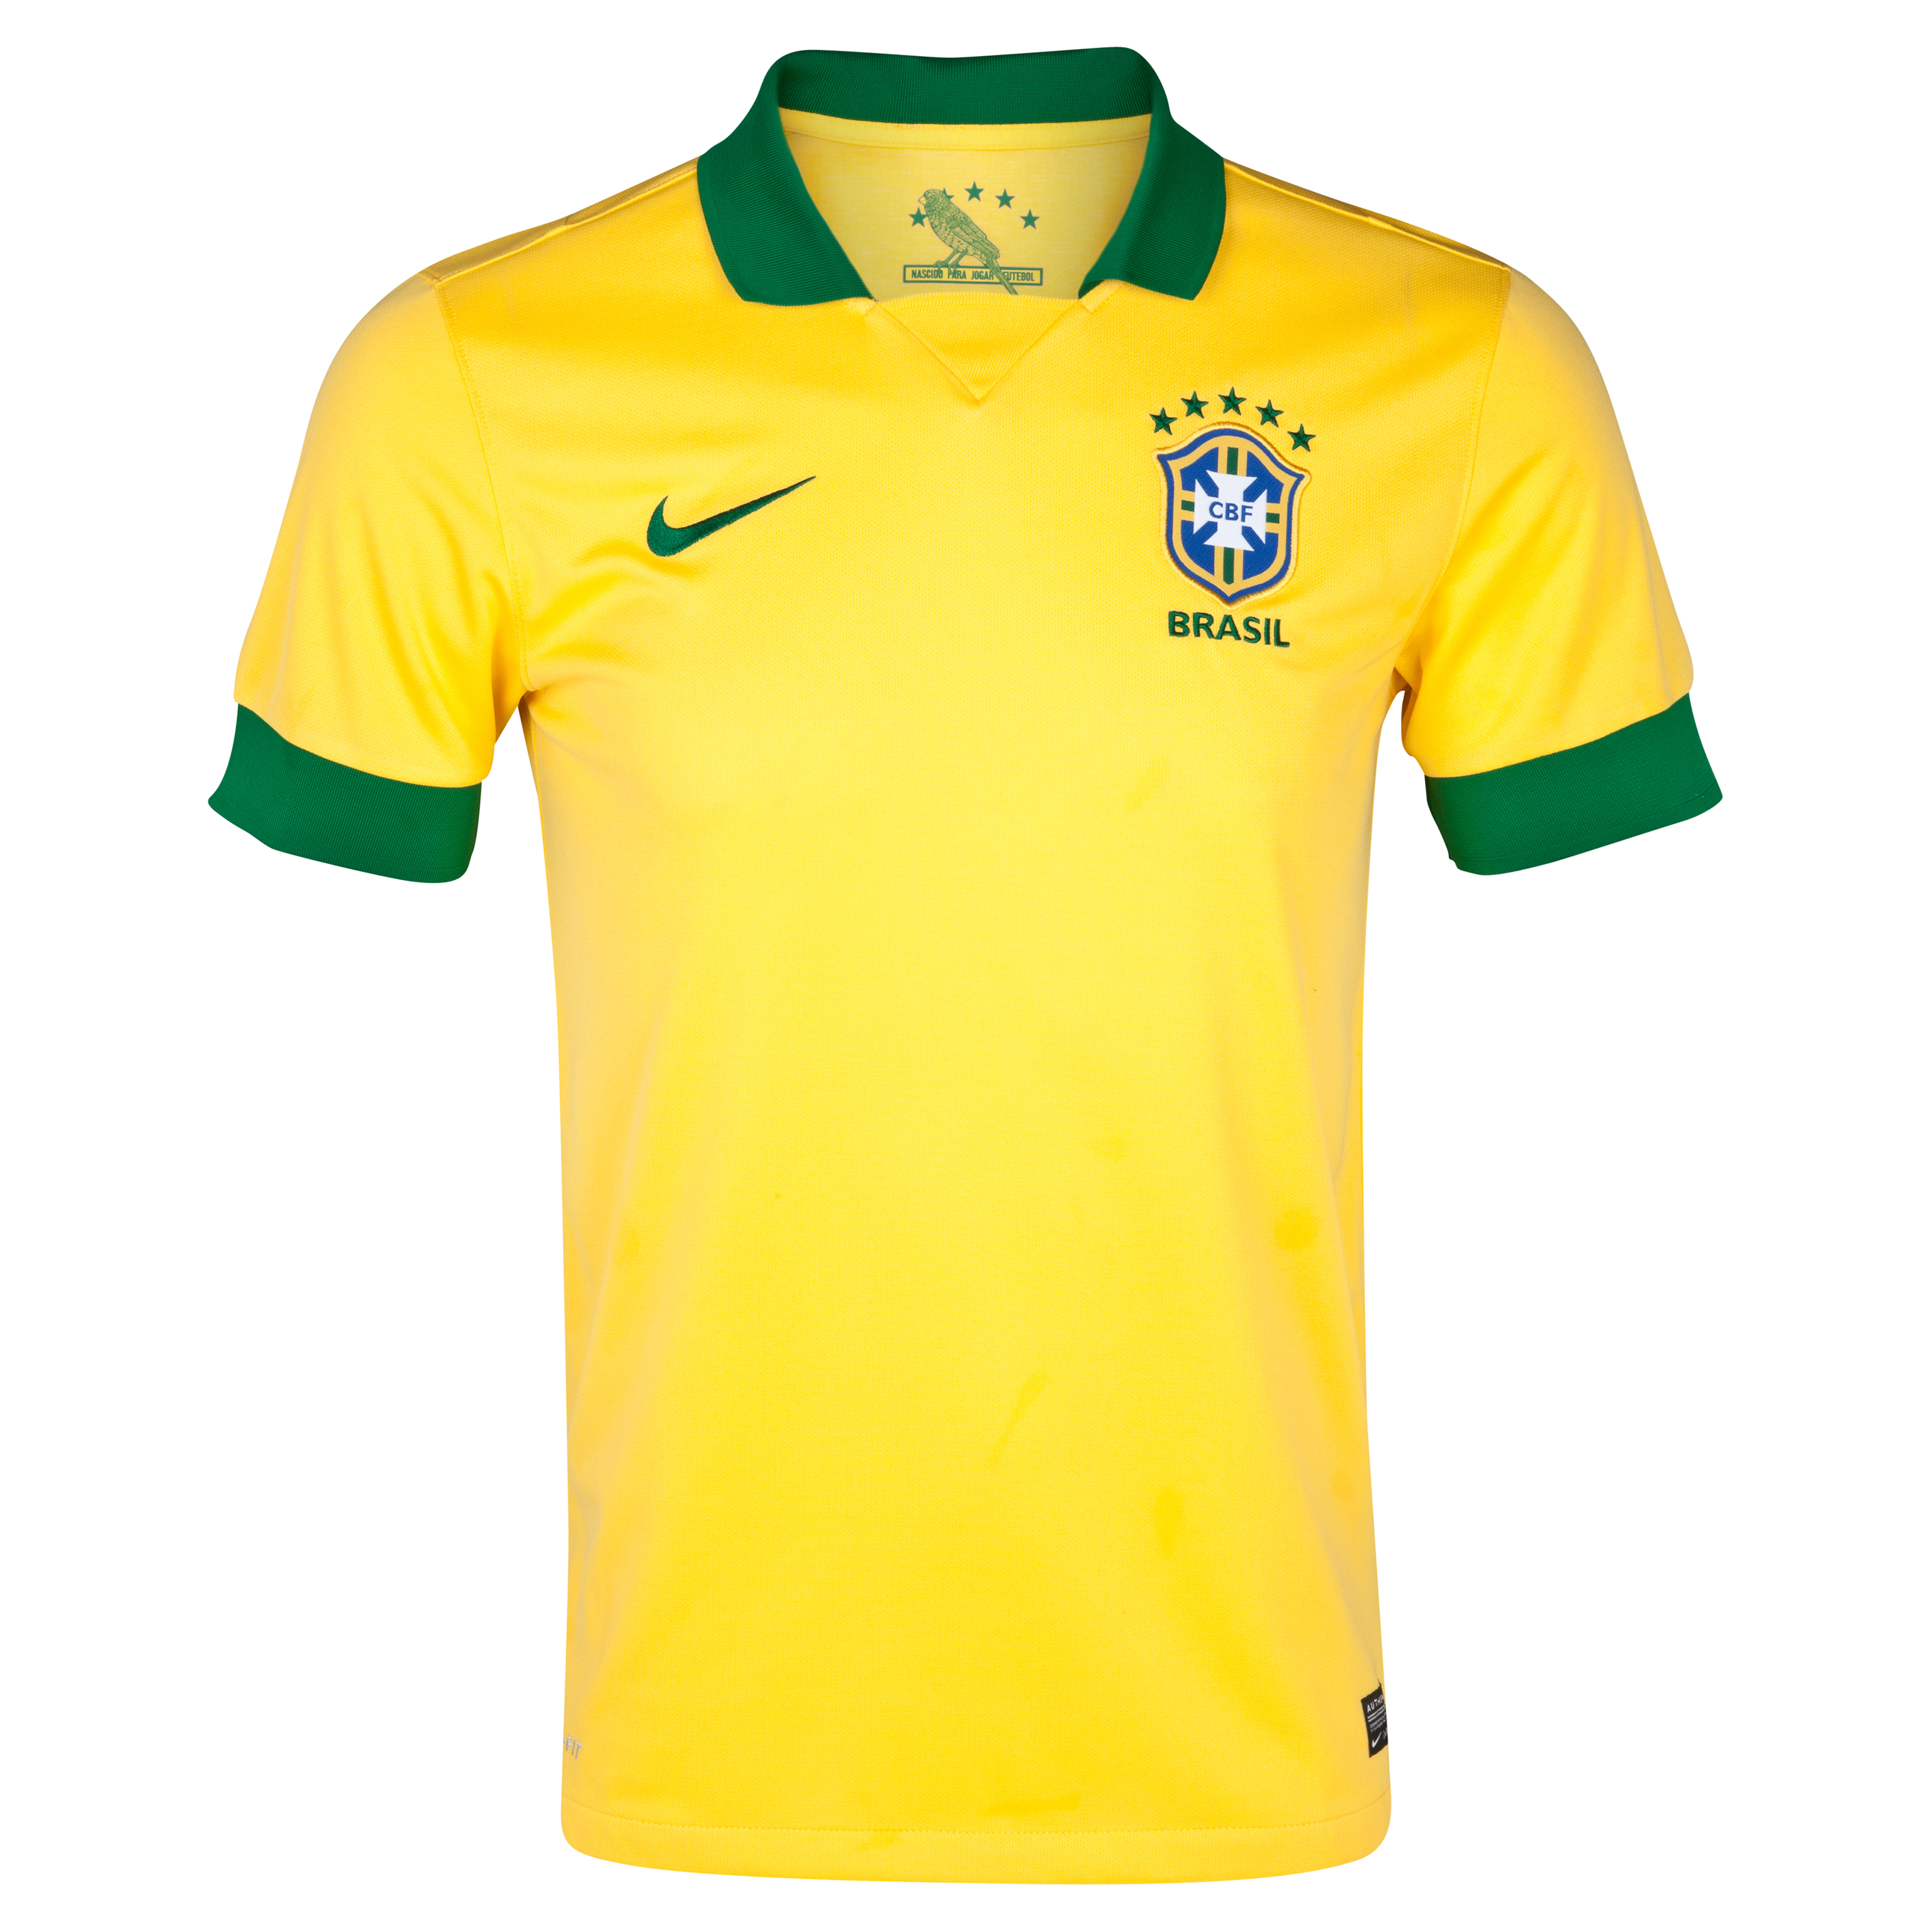 Brazil Home Shirt 2013/14 Youths